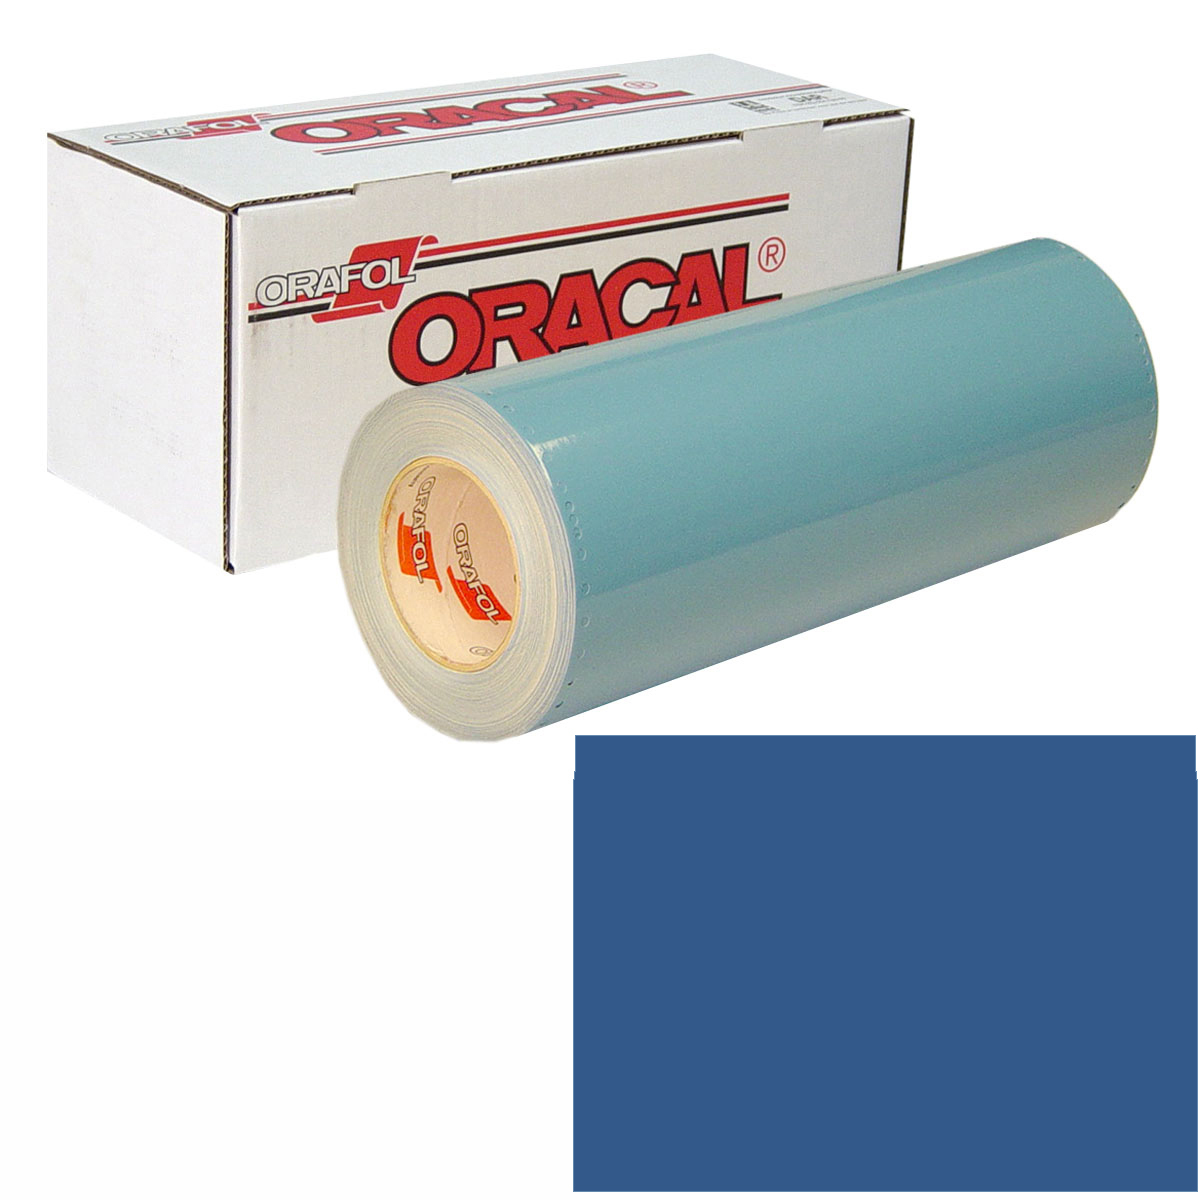 ORACAL 751 Unp 24In X 50Yd 050 Dark Blue